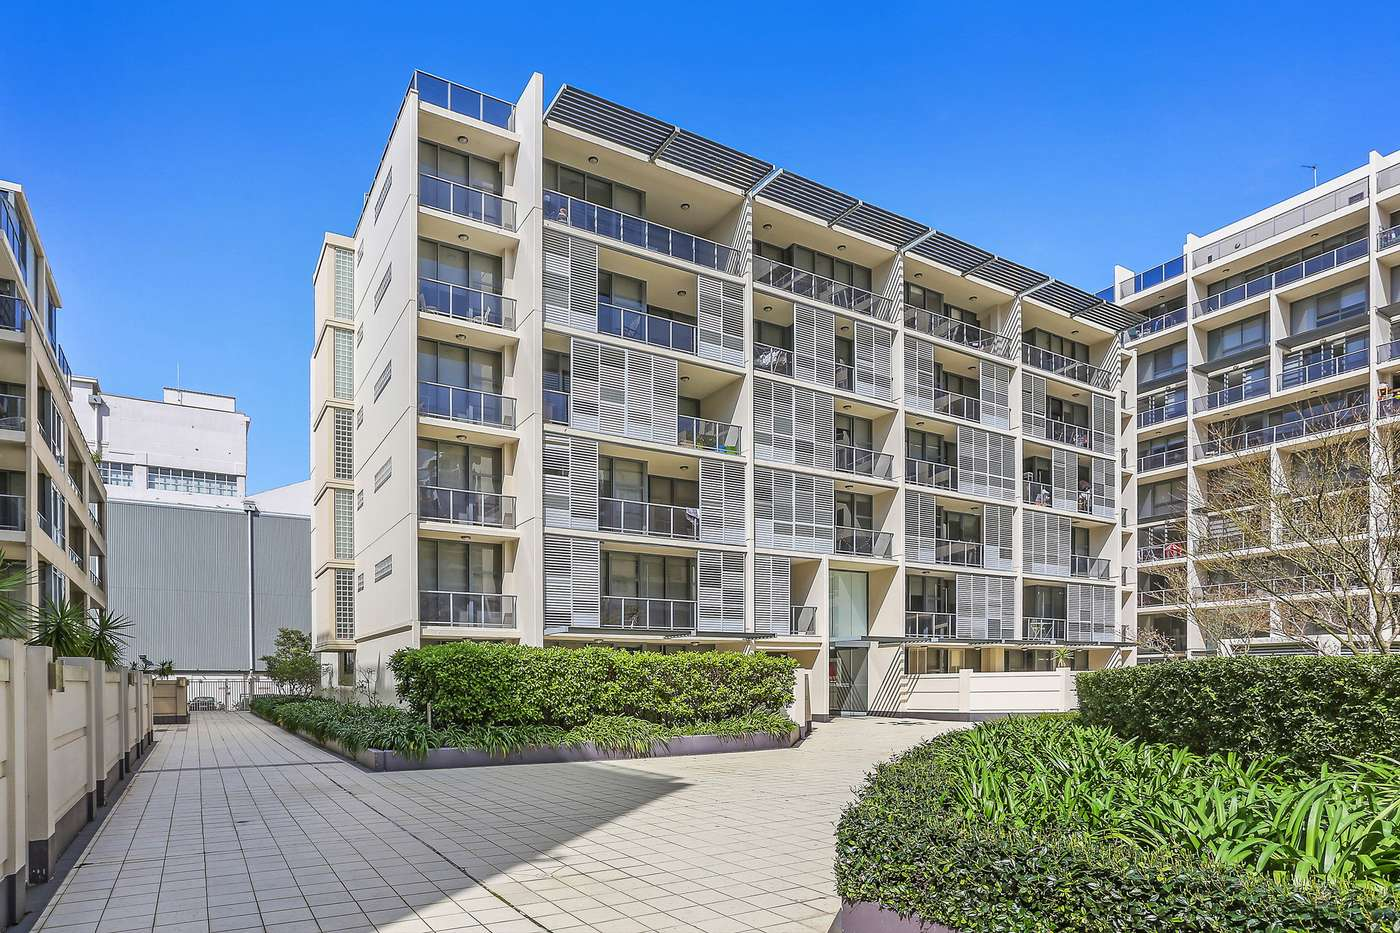 Main view of Homely apartment listing, 65/15 Potter Street, Waterloo, NSW 2017